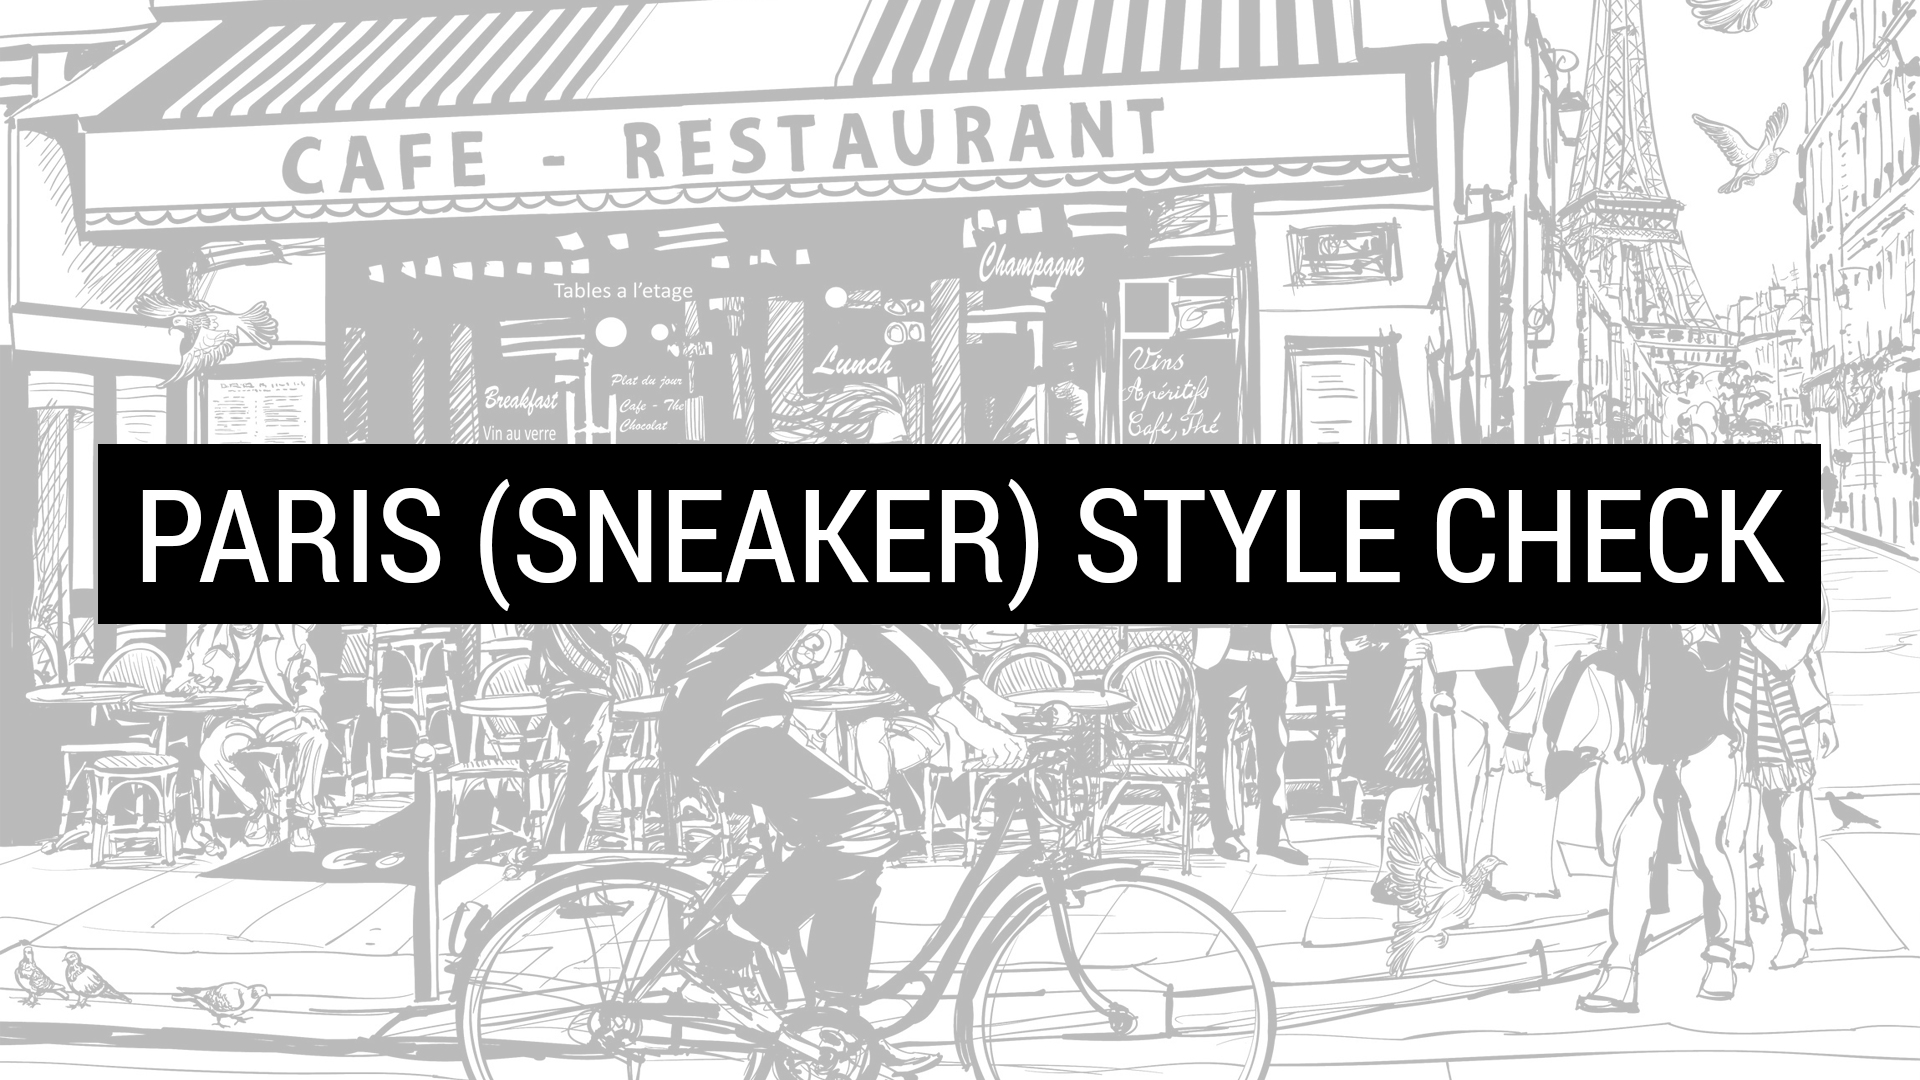 Párizs Sneaker   Hype Store Check - sneakerbox.hu blog   shop 82c1df0671